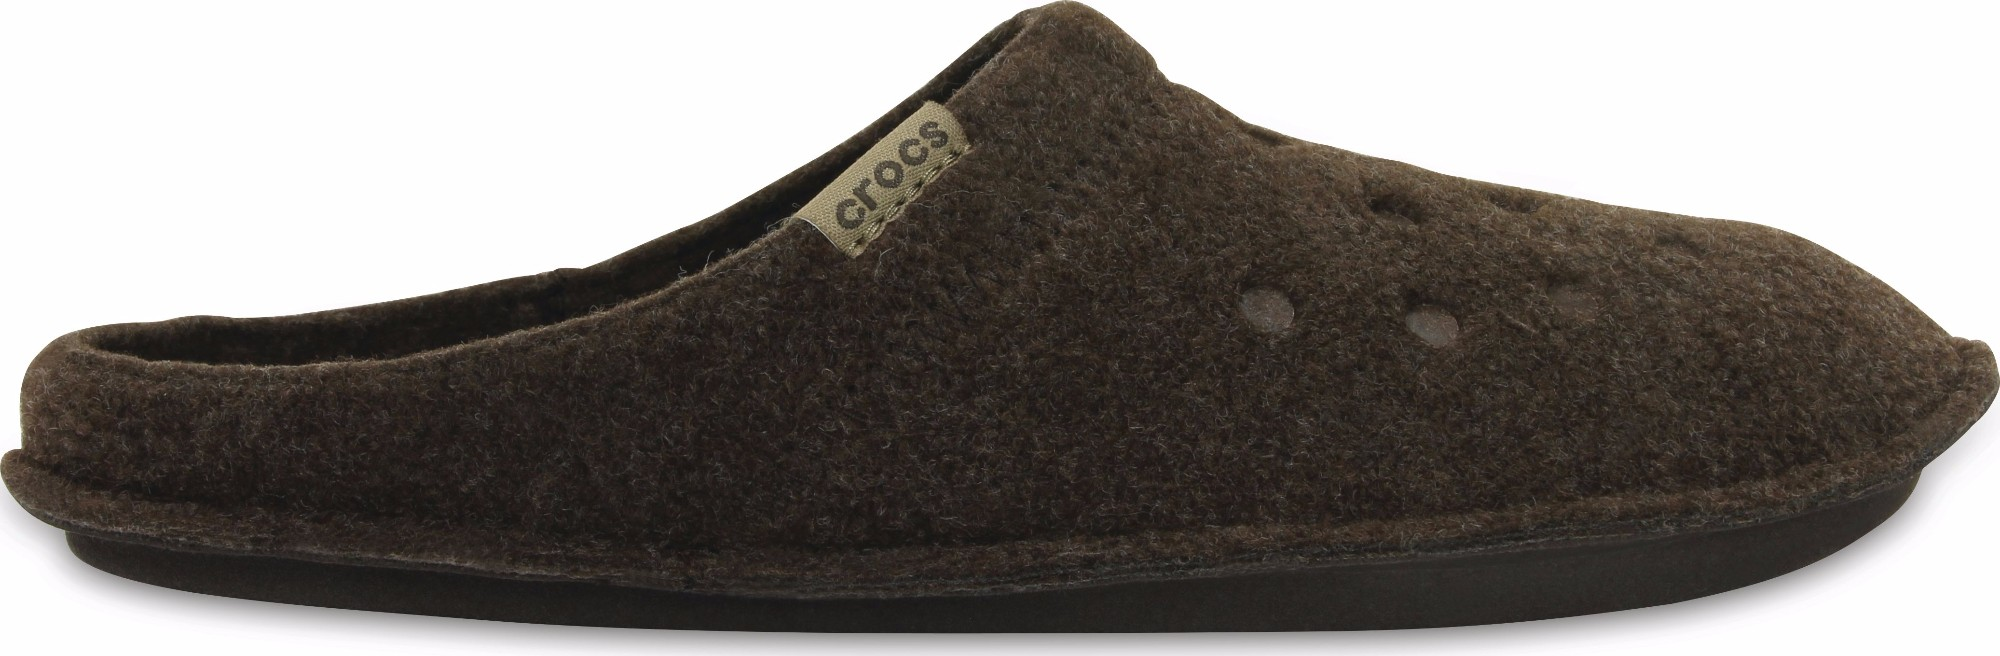 Crocs™ Classic Slipper Espresso/Walnut 36,5